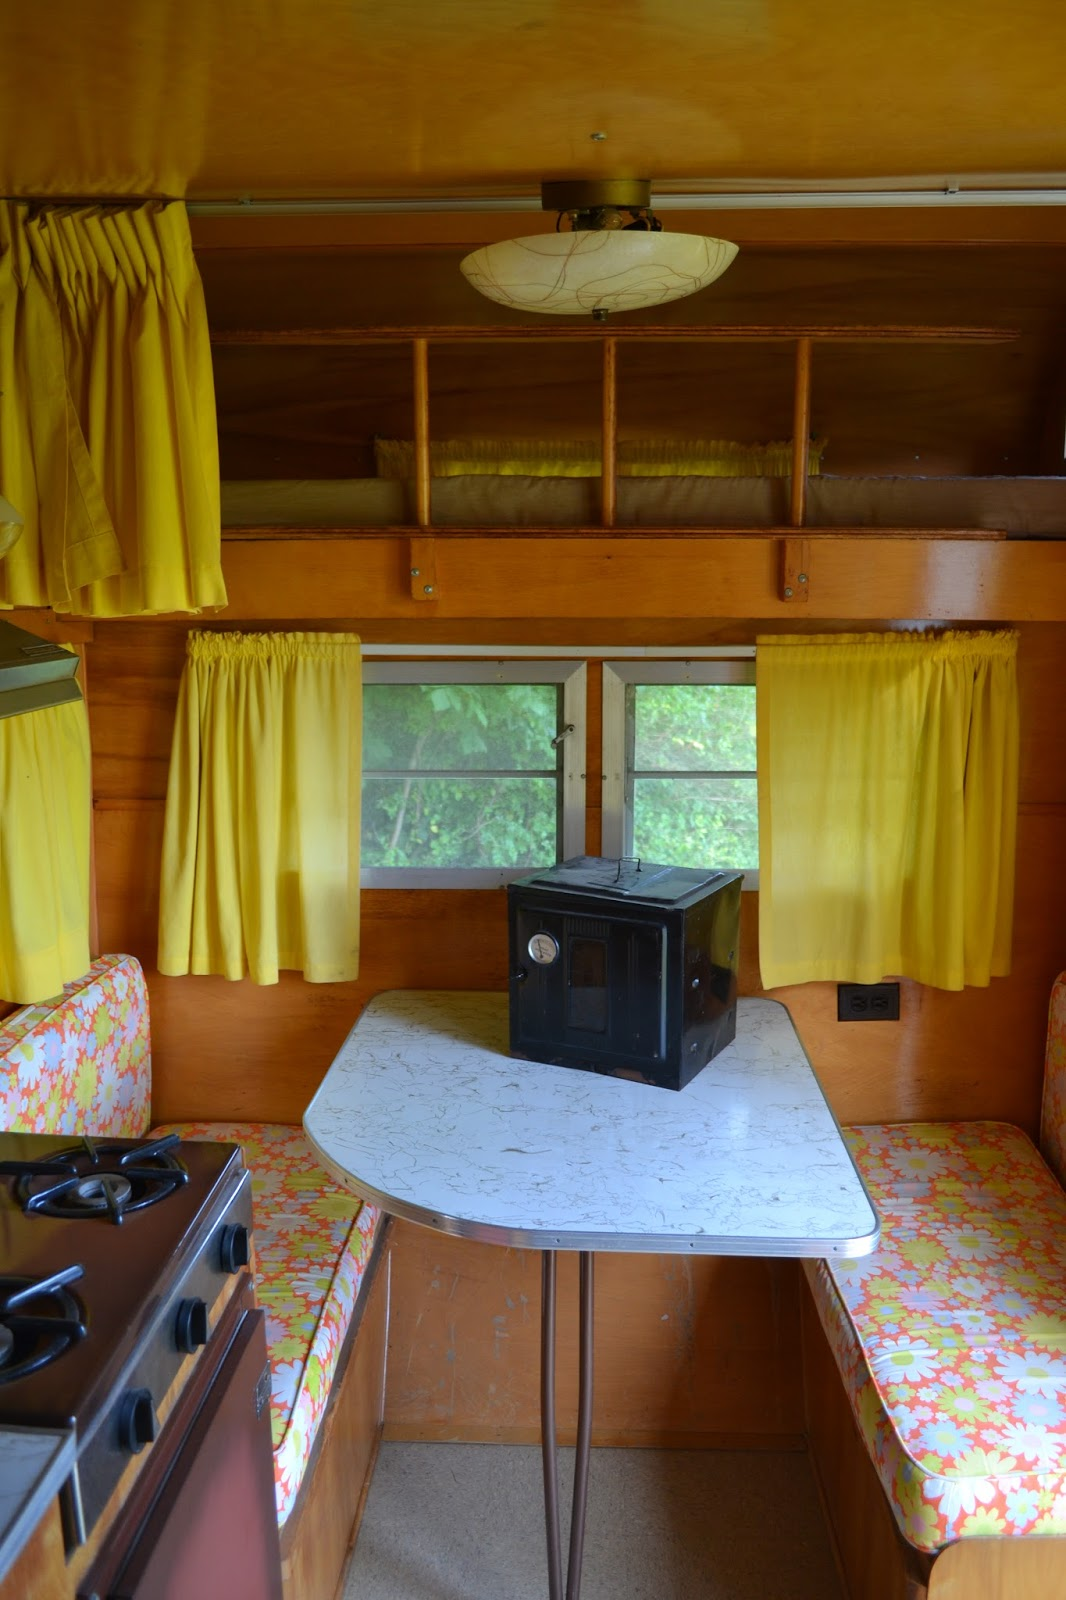 Closet Crafter: 1963 Yellowstone 13 Foot Trailer Is Home!